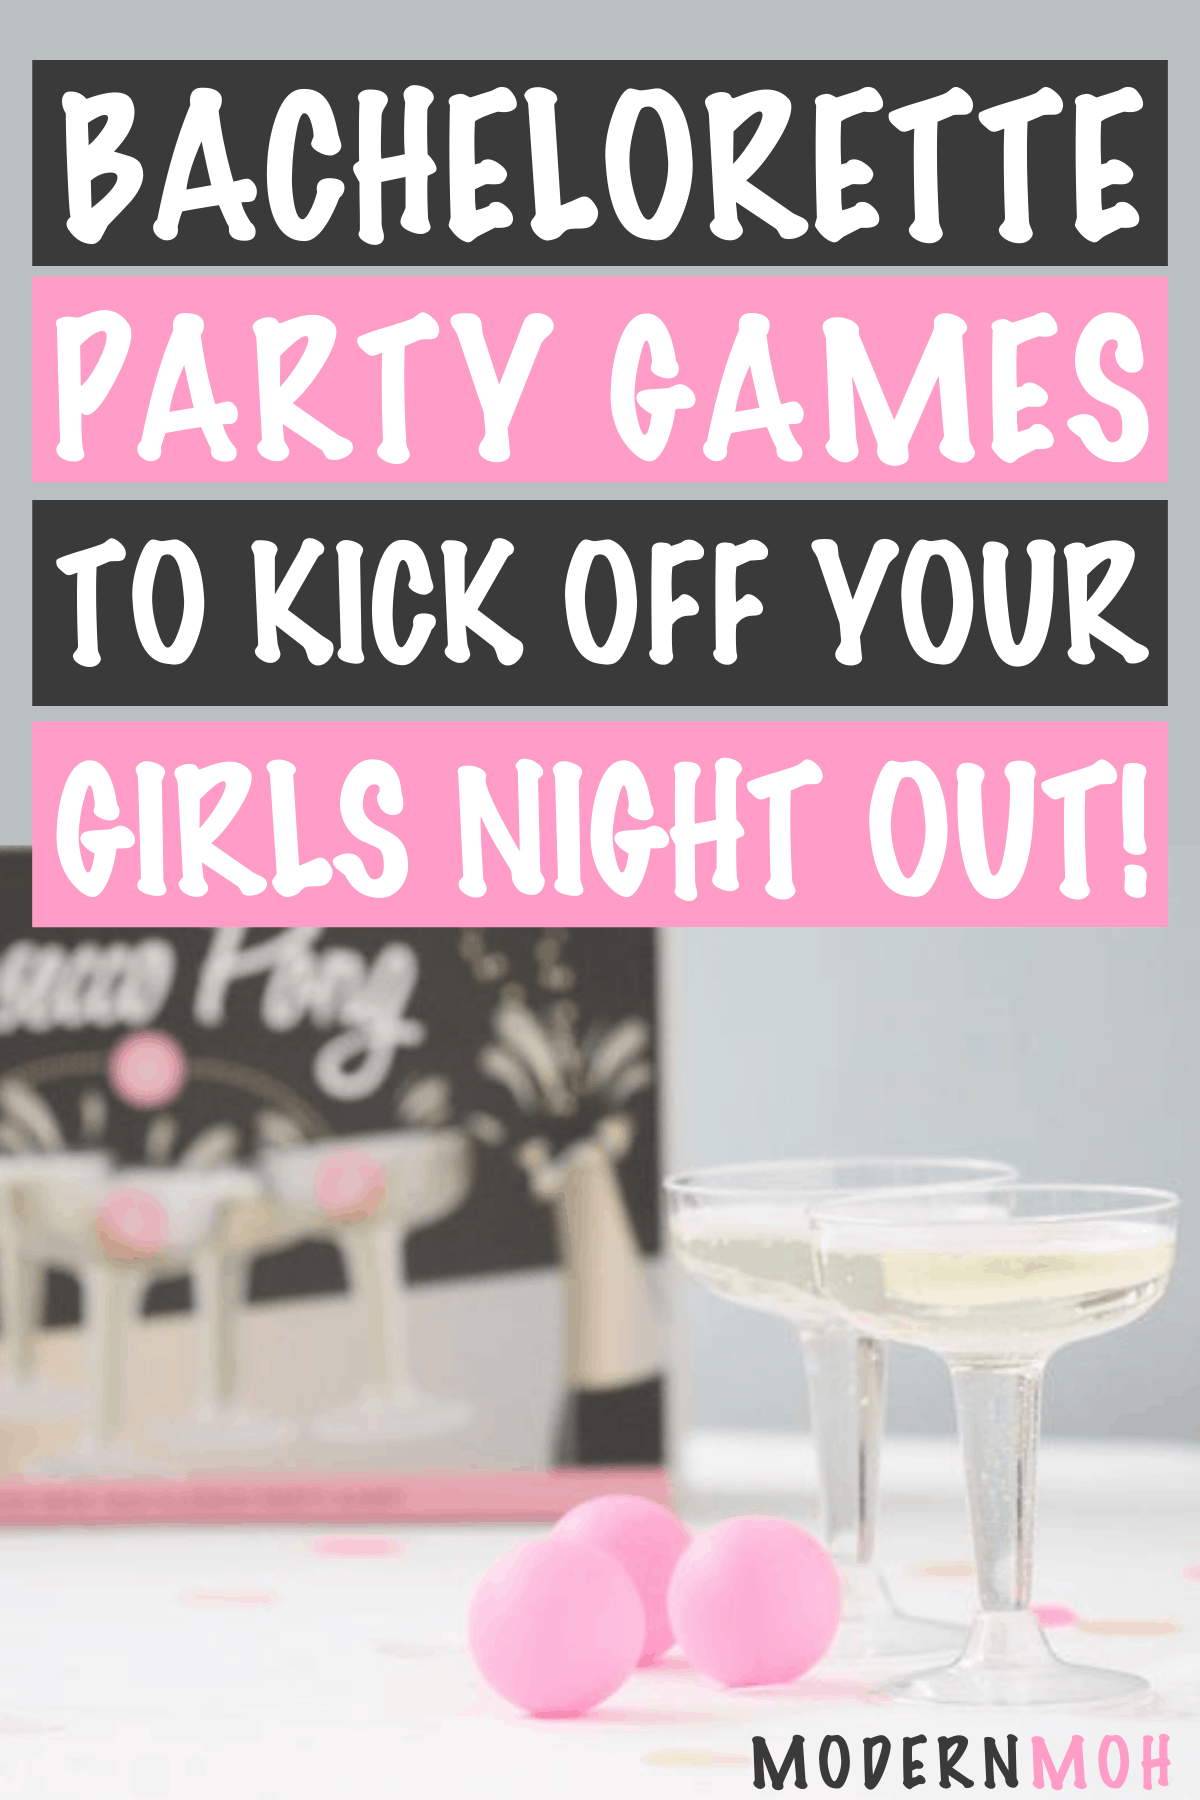 10 Bachelorette Party Games to Kick Off Your Girls Night Out